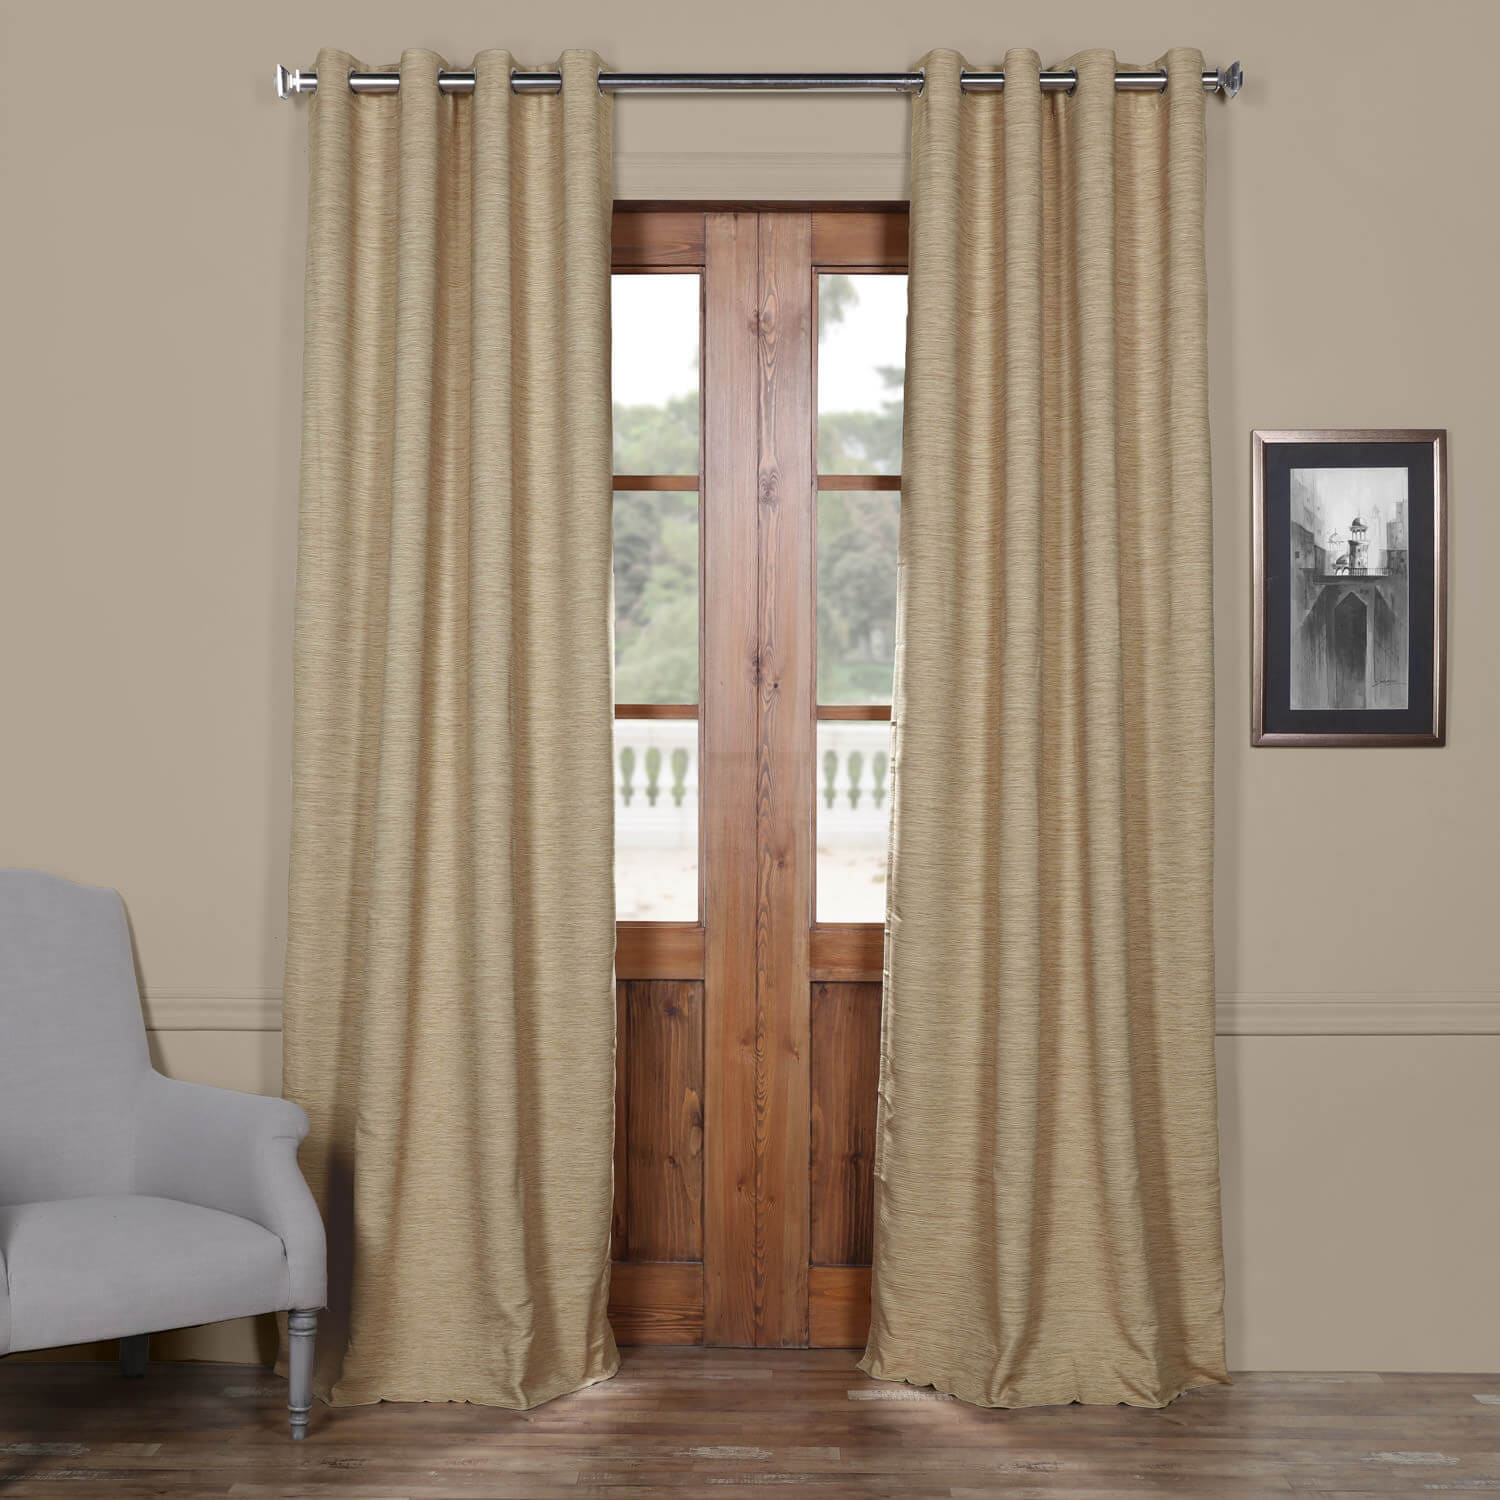 Curtain Deals Ginger Bellino Grommet Blackout Curtain Deals Learn More